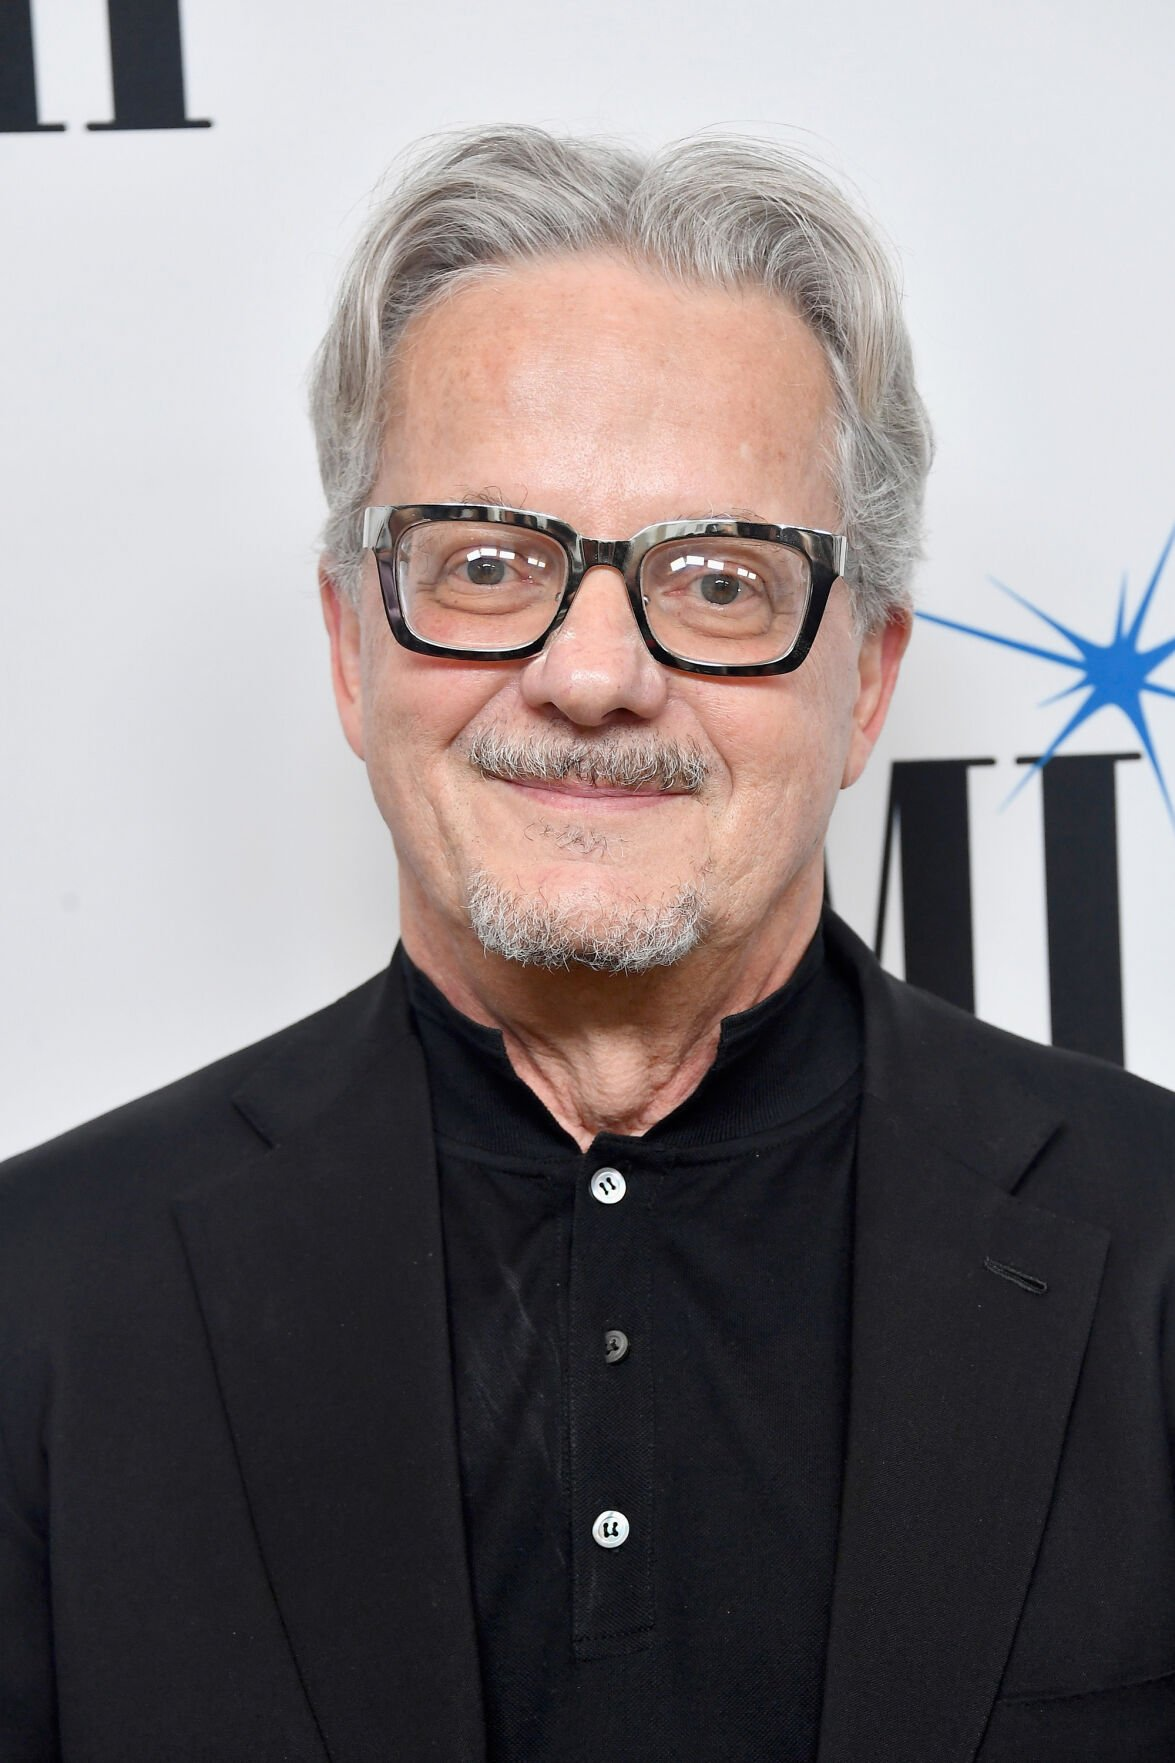 Mark Mothersbaugh nearly died from COVID-19. FaceTiming with his family kept him alive